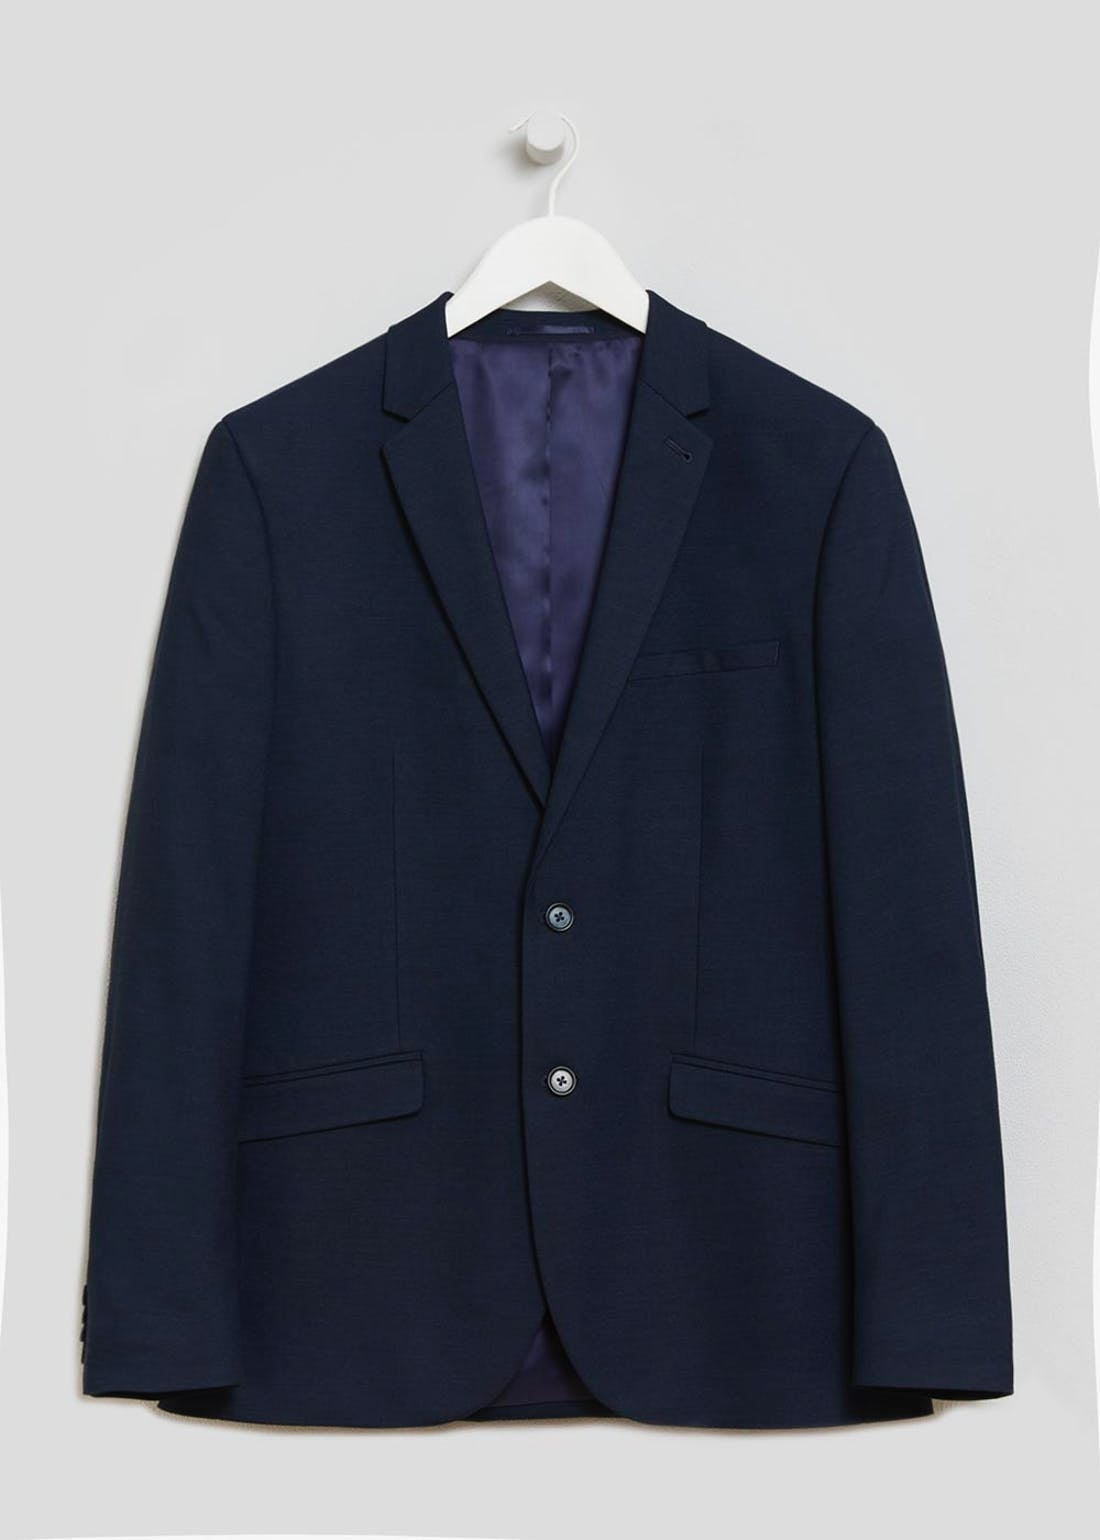 Taylor & Wright Jones Skinny Fit Suit Jacket